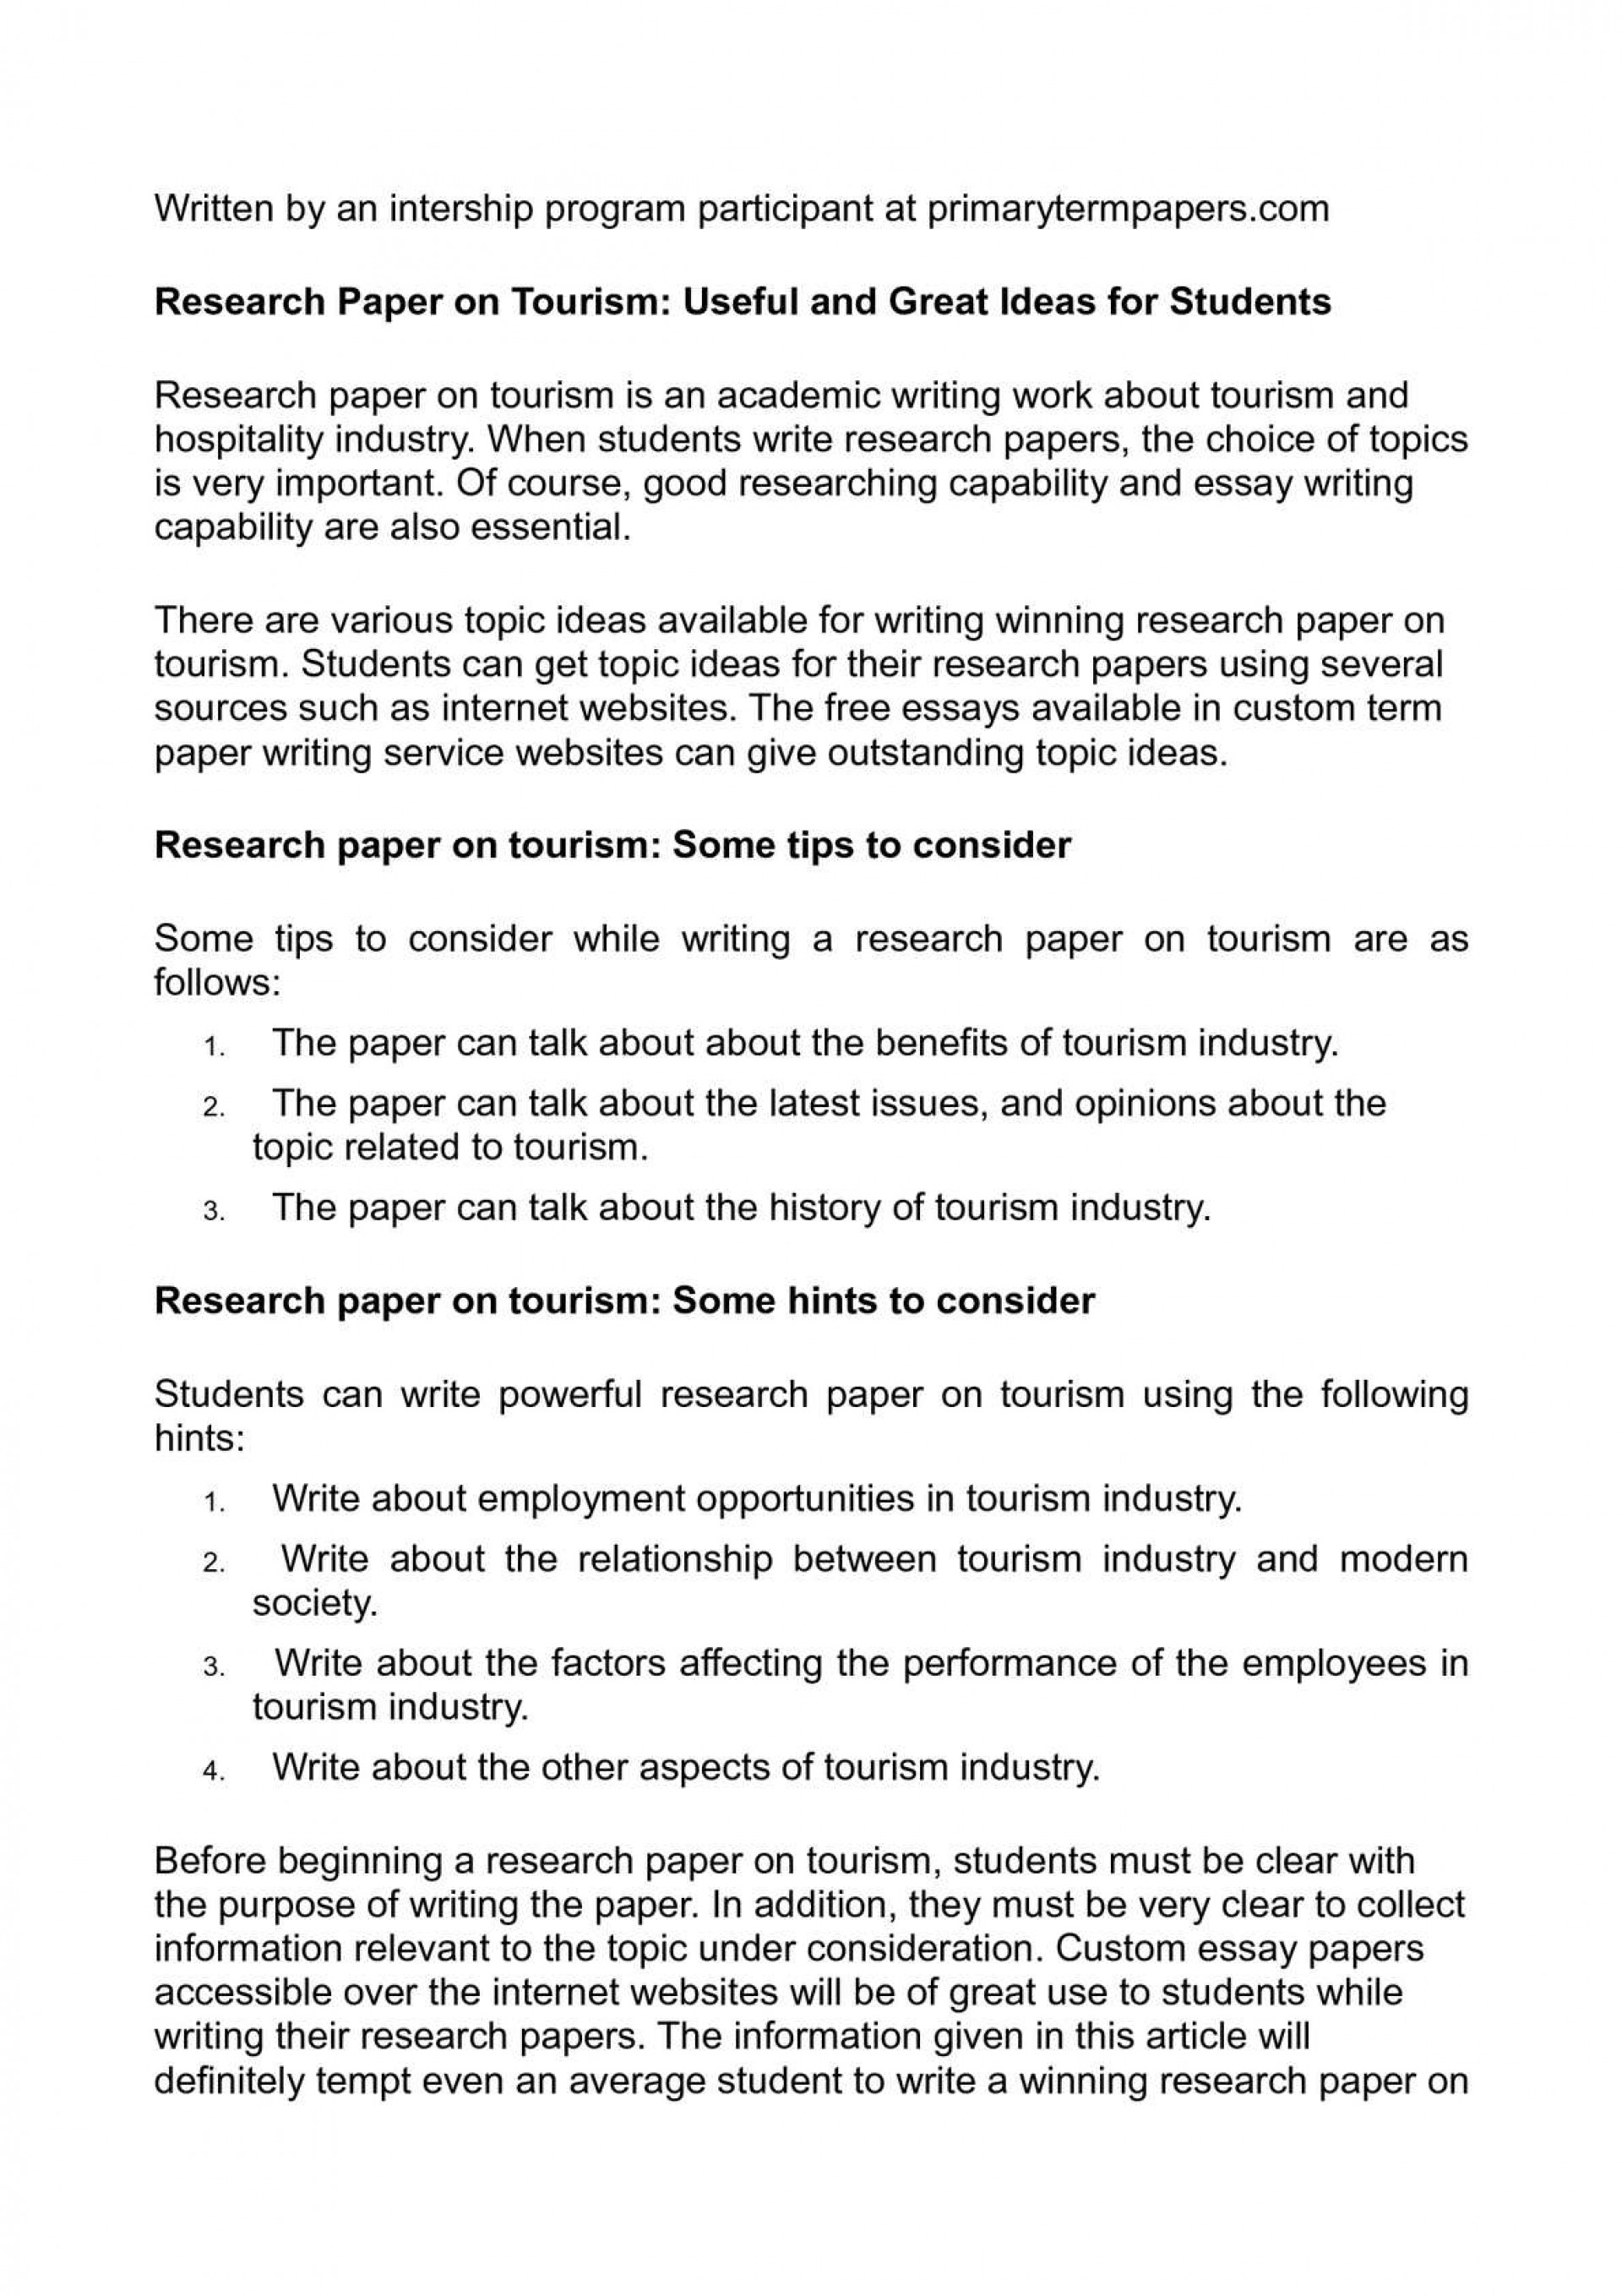 006 P1 Topics To Write Research Paper Fearsome A On Fun Good Essay Ideas 1920